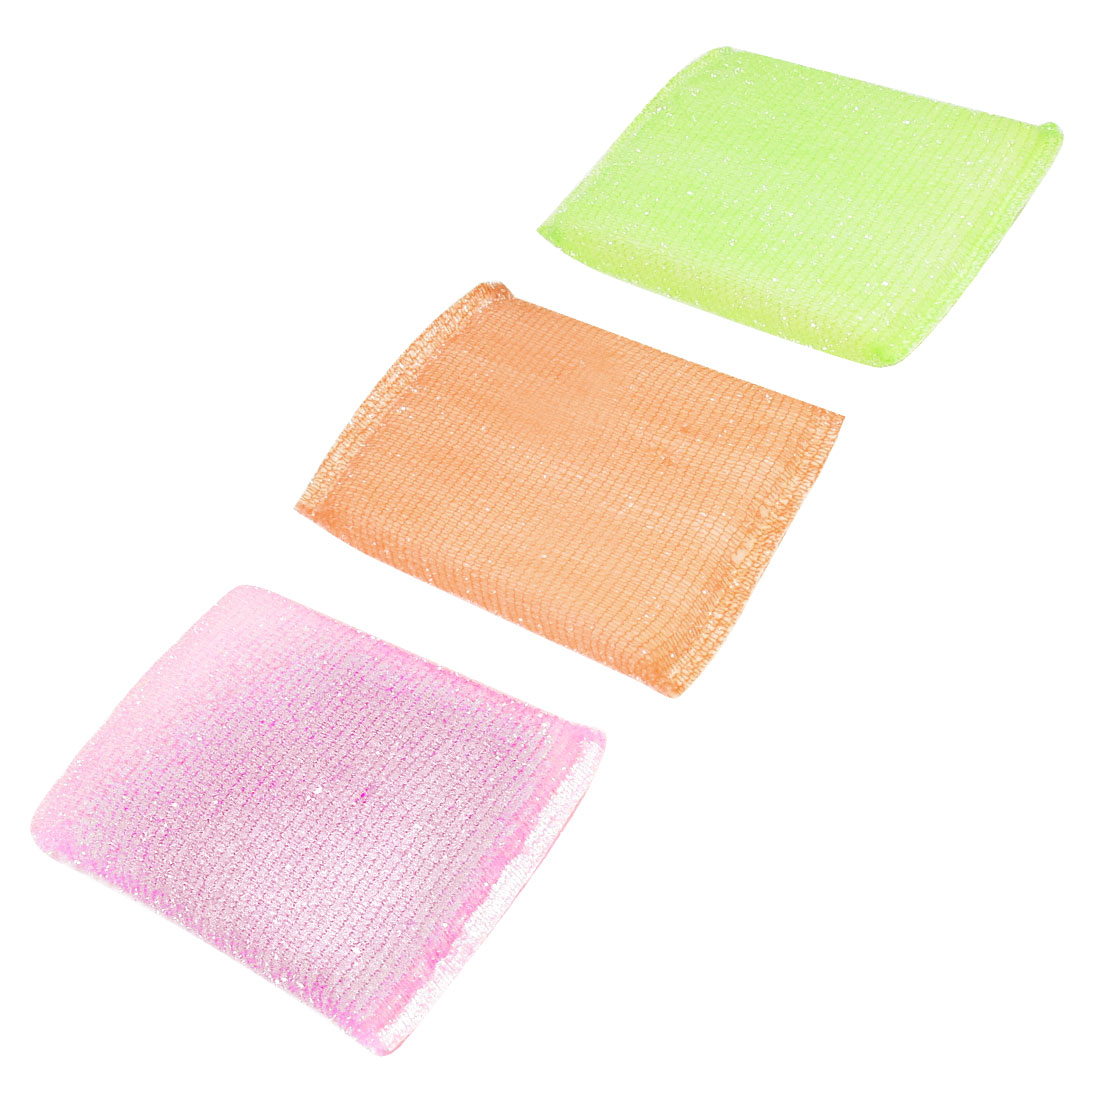 Kitchen Cotton Blends Wraped Sponge Pink Green Orange Dish Pad Cleaner 3 Pcs